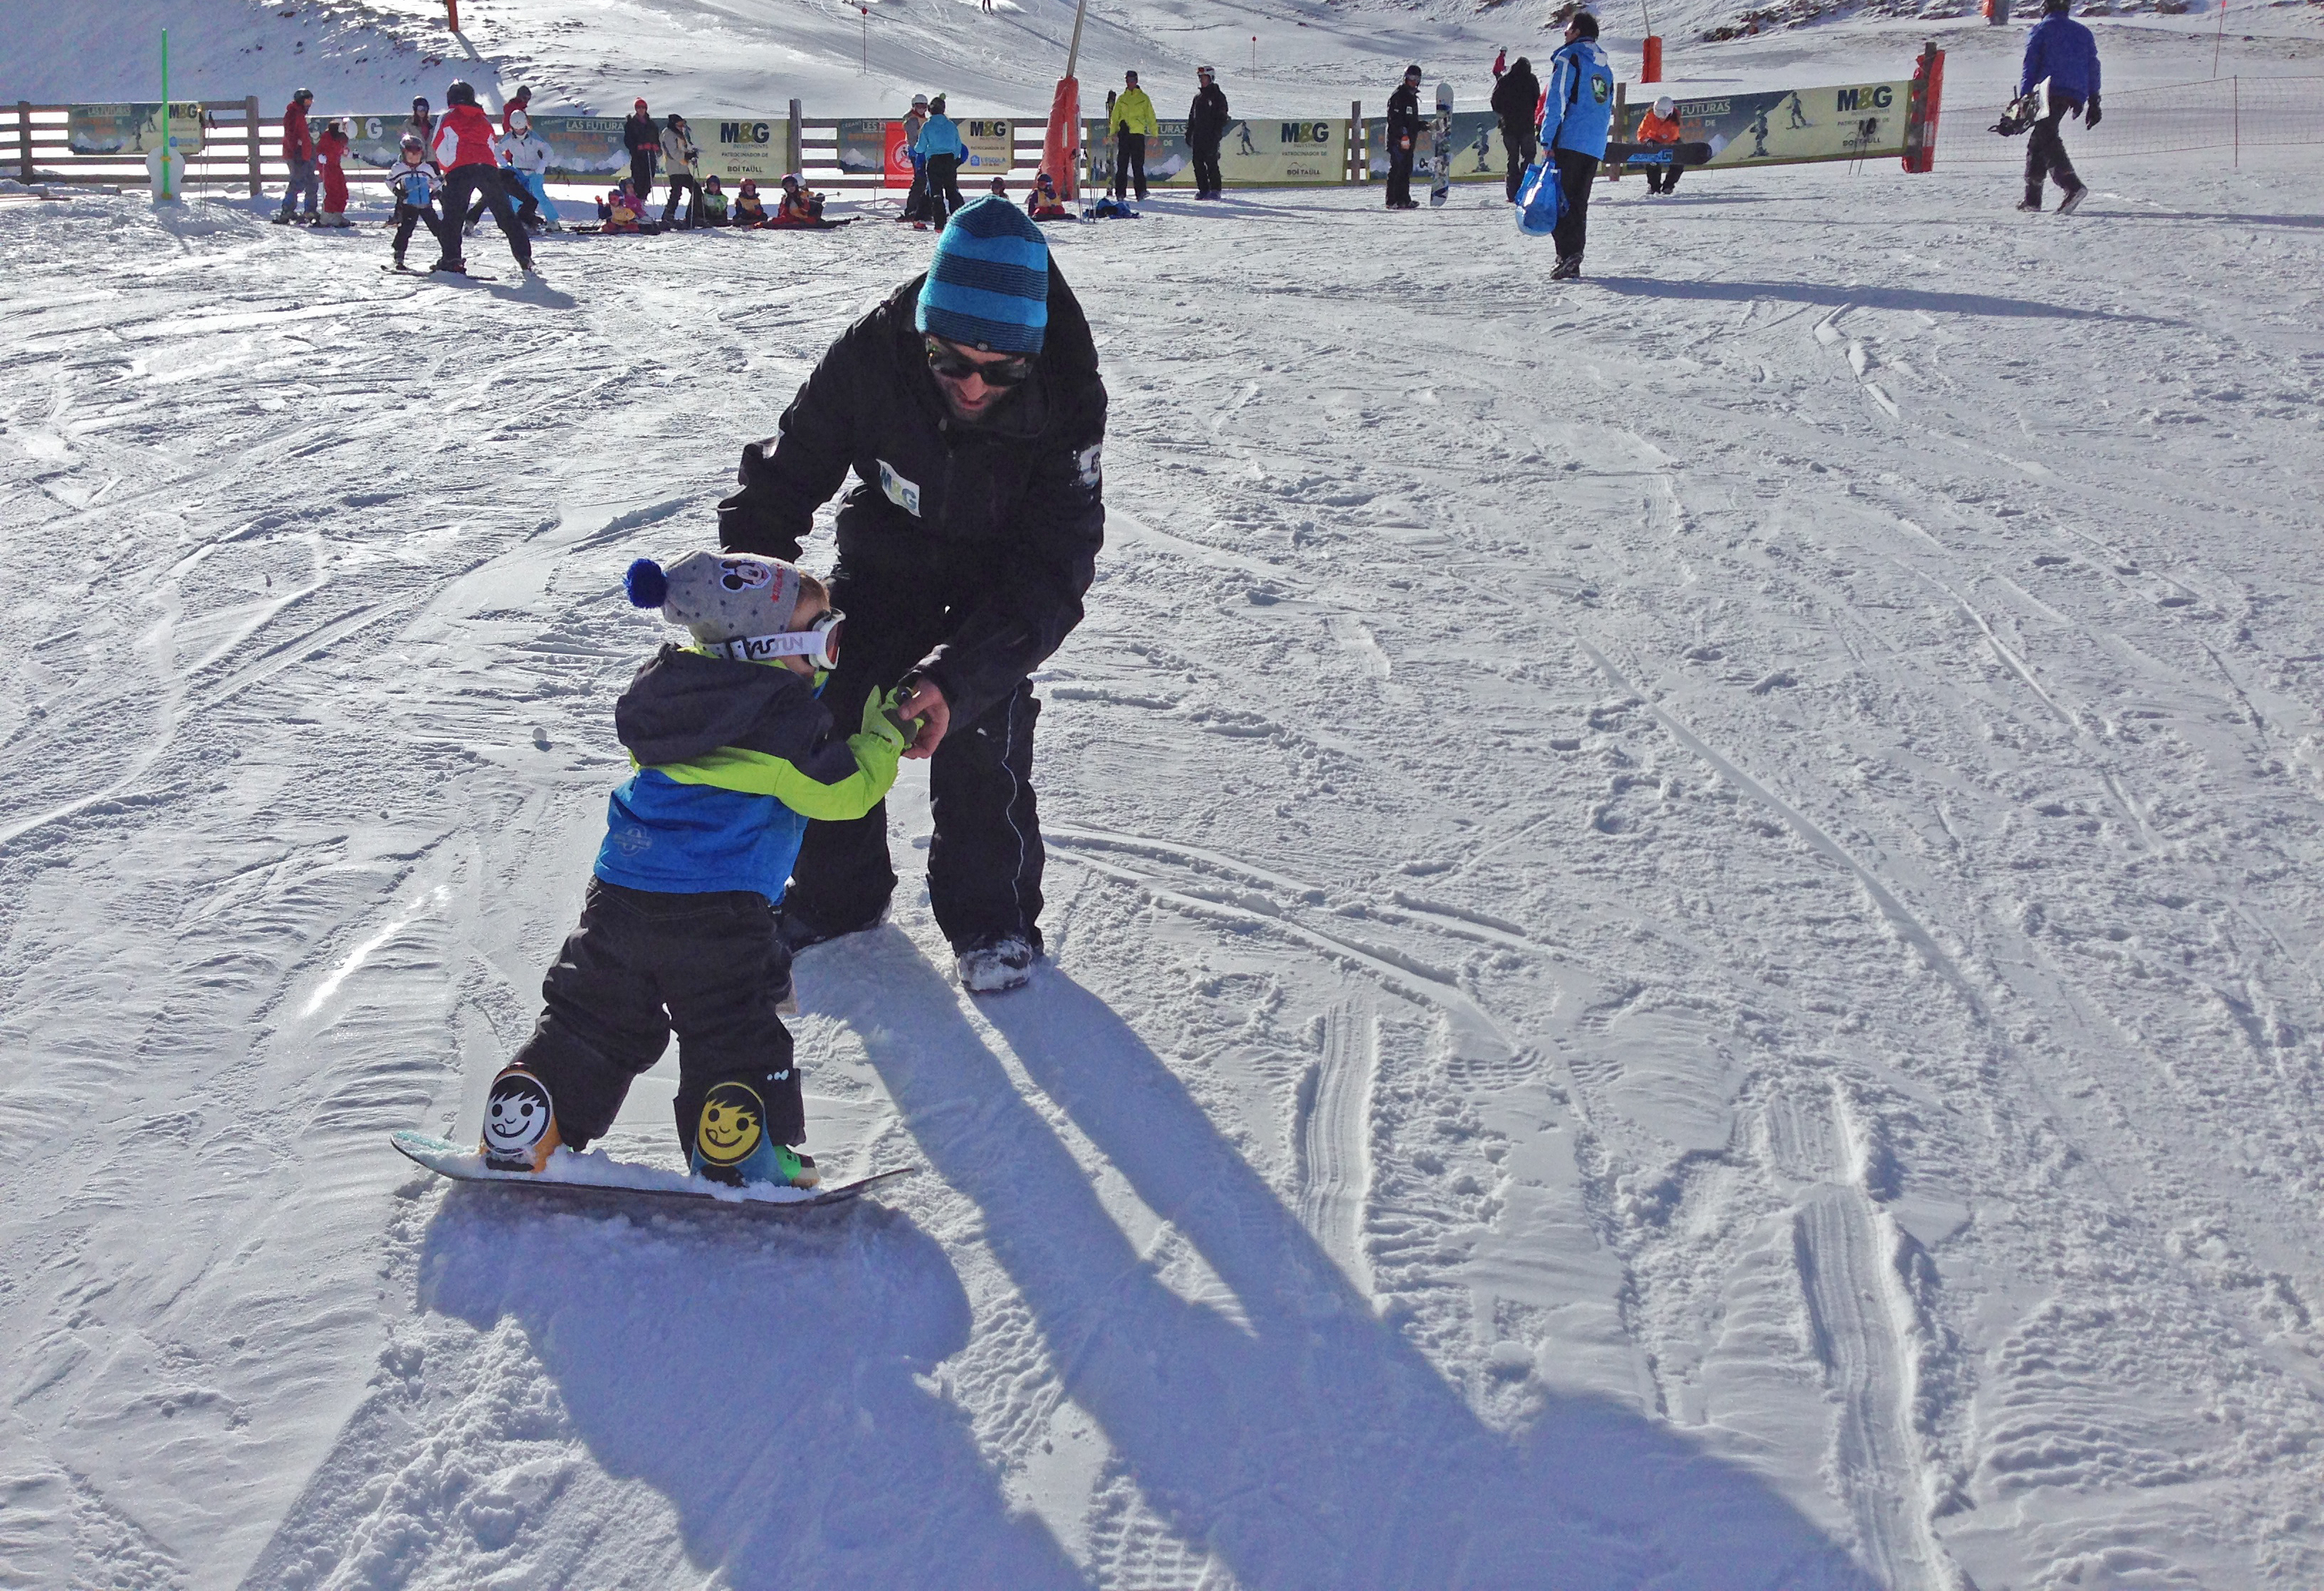 Snowboarding for children. © Boí-Taüll Resort